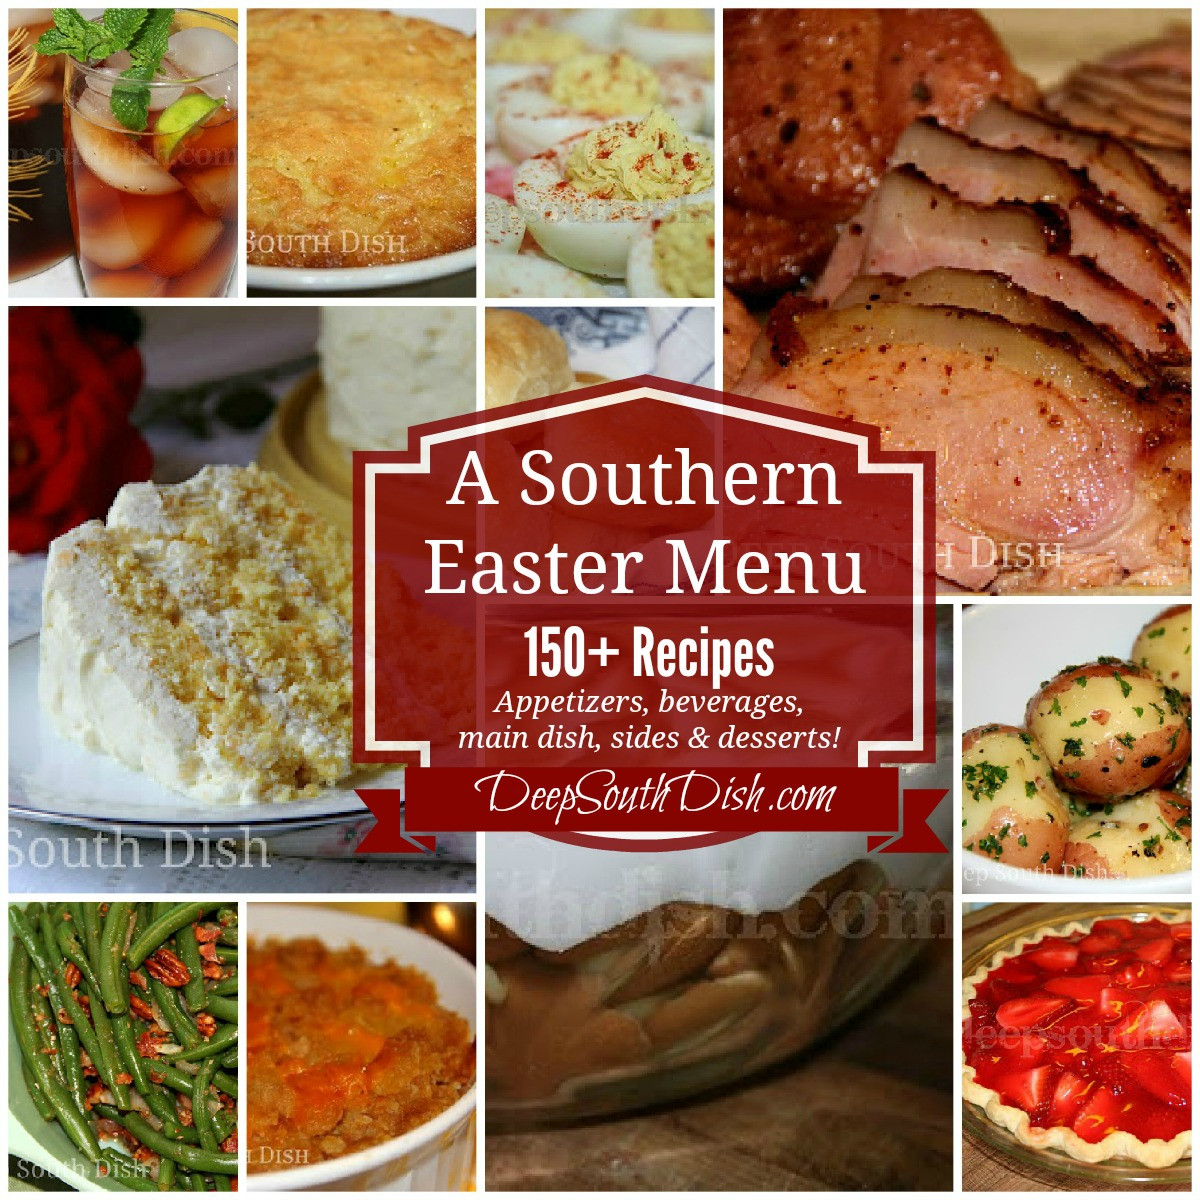 Easter Dinner Menus Ideas  Deep South Dish Southern Easter Menu Ideas and Recipes